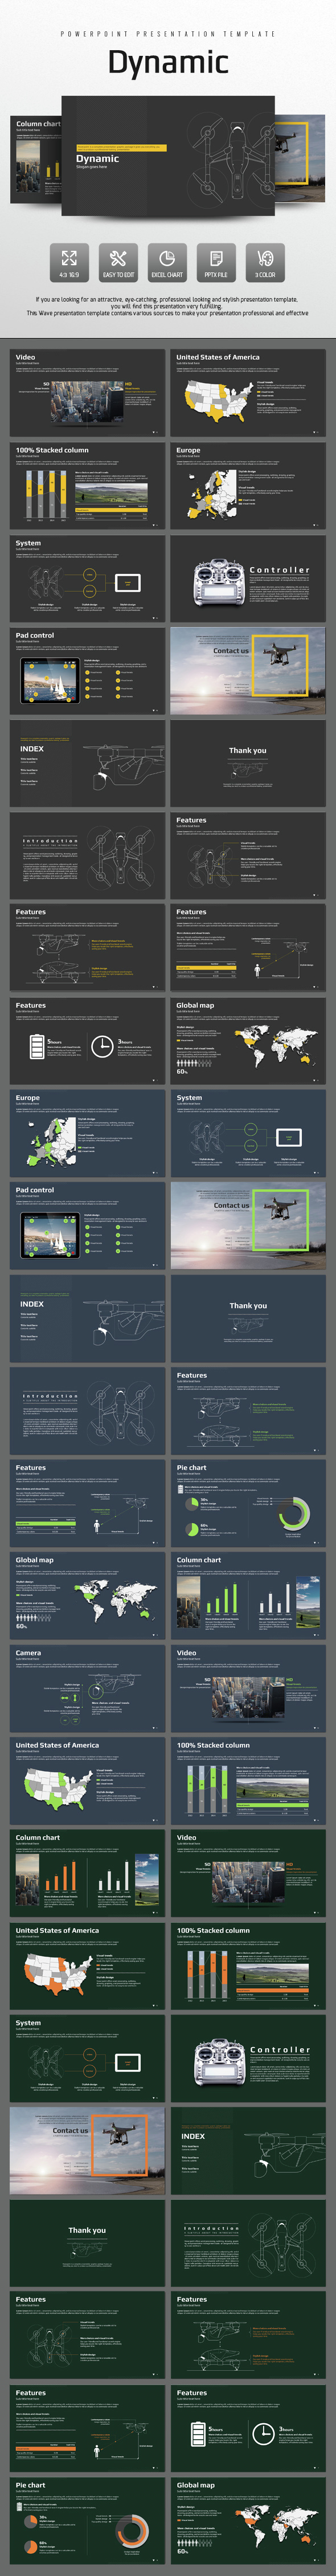 Dynamic (PowerPoint Templates)